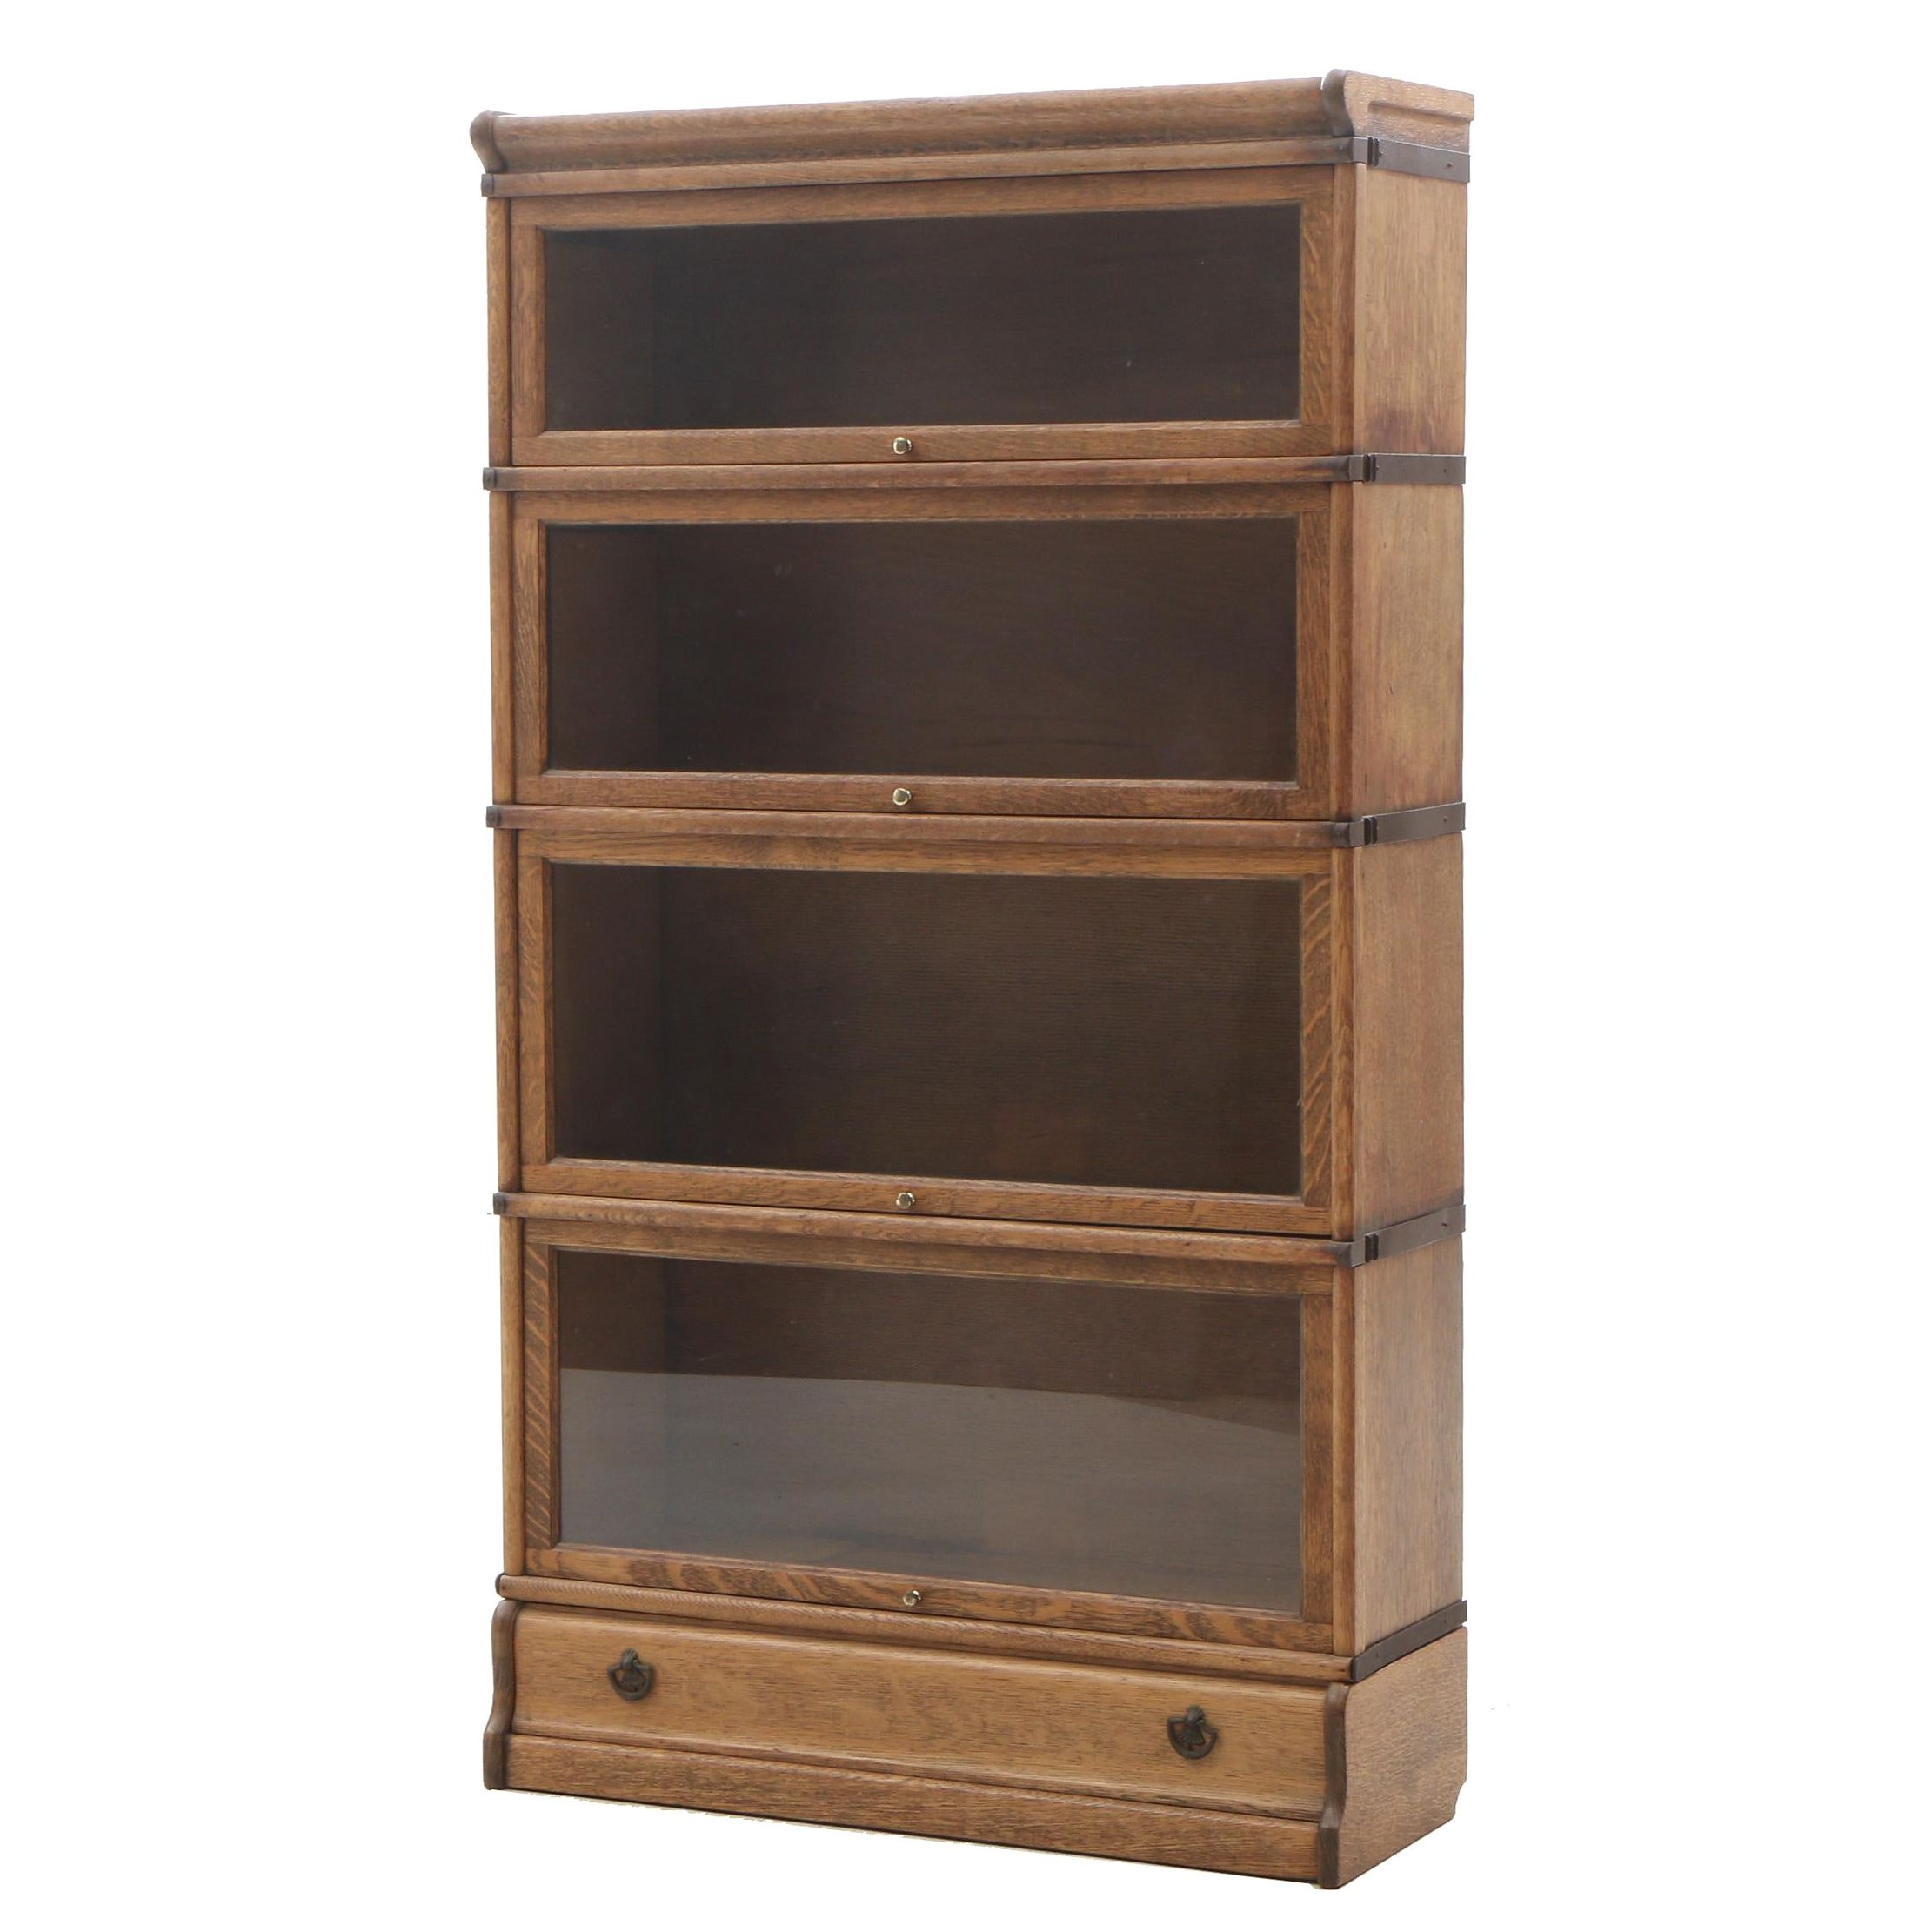 Quarter Sawn oak Barrister Bookcase, Early 20th Century